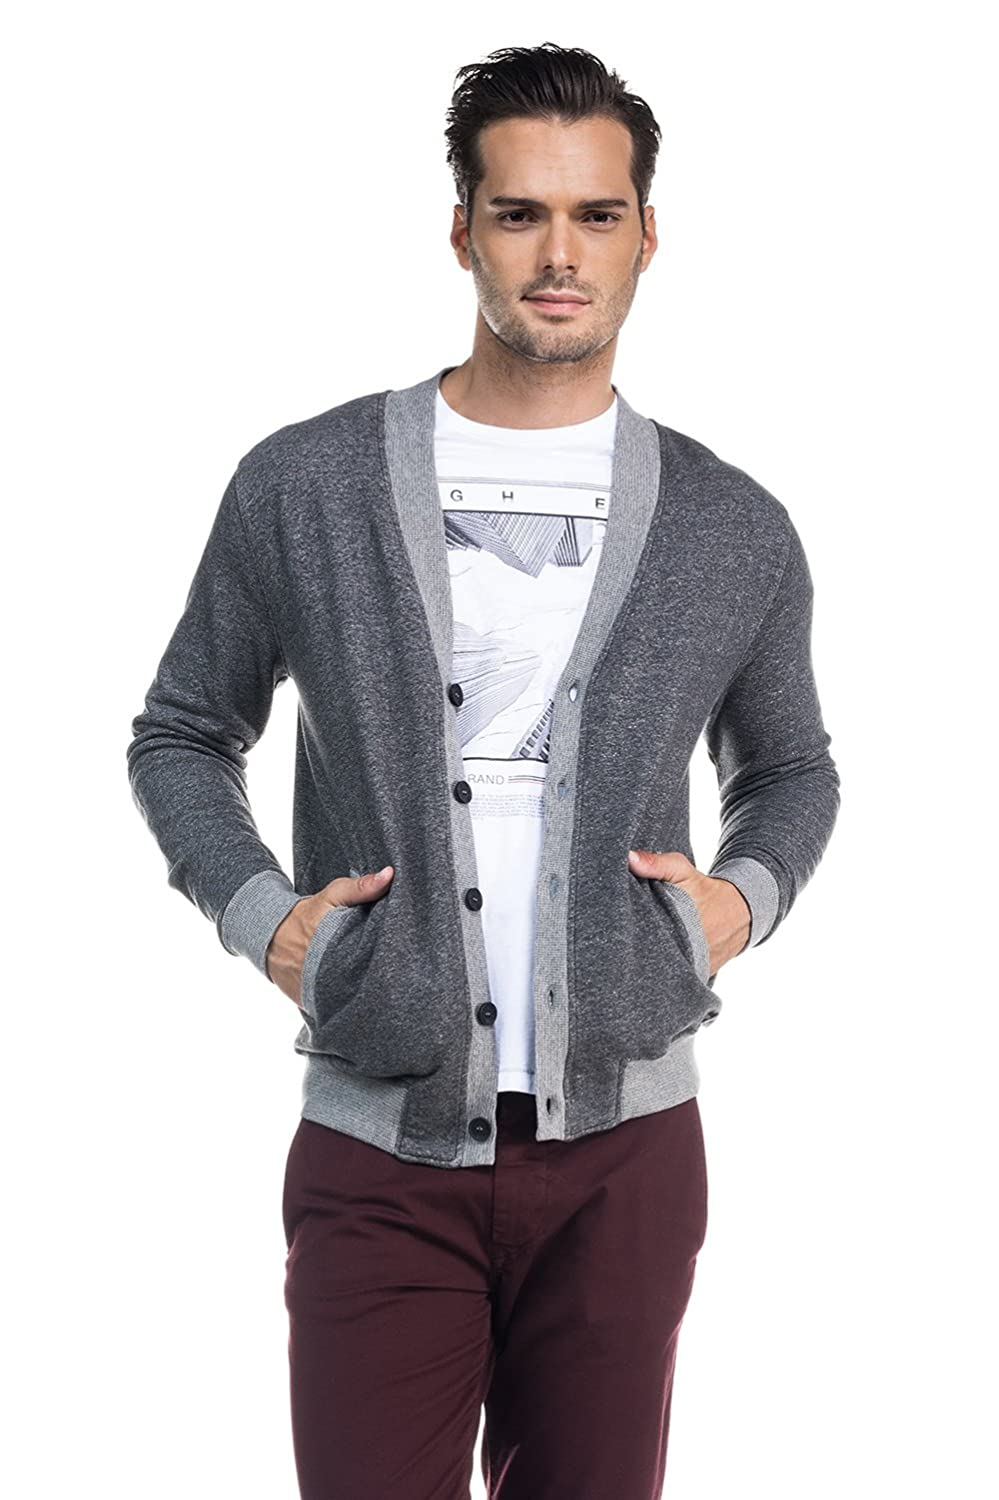 SALSA Thin cardigan with v-neck collar